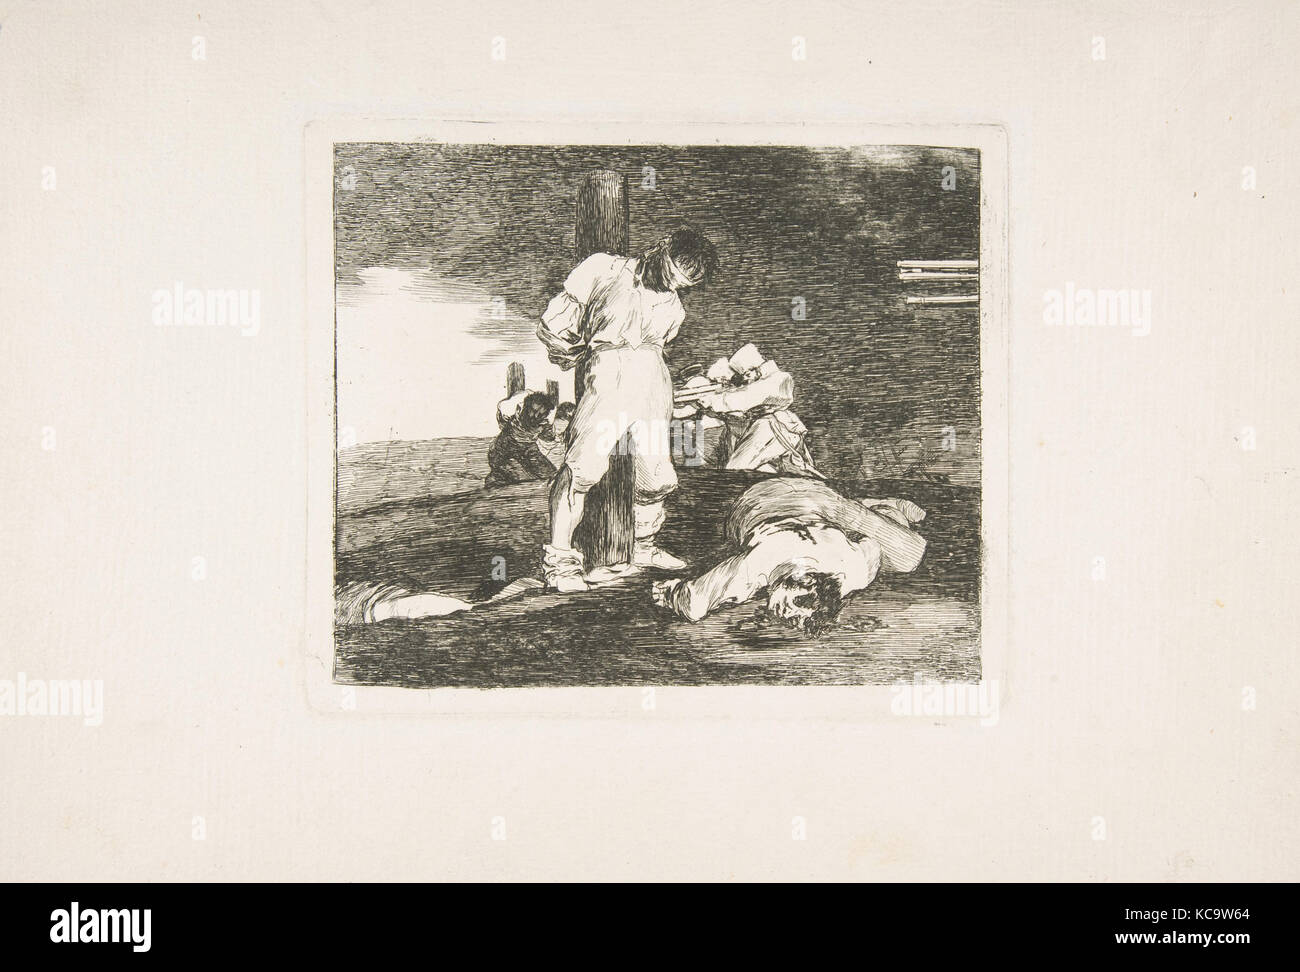 Plate 15 from 'The Disasters of War' (Los Desastres de la Guerra): And there is no help (Y no hai remedio), - Stock Image